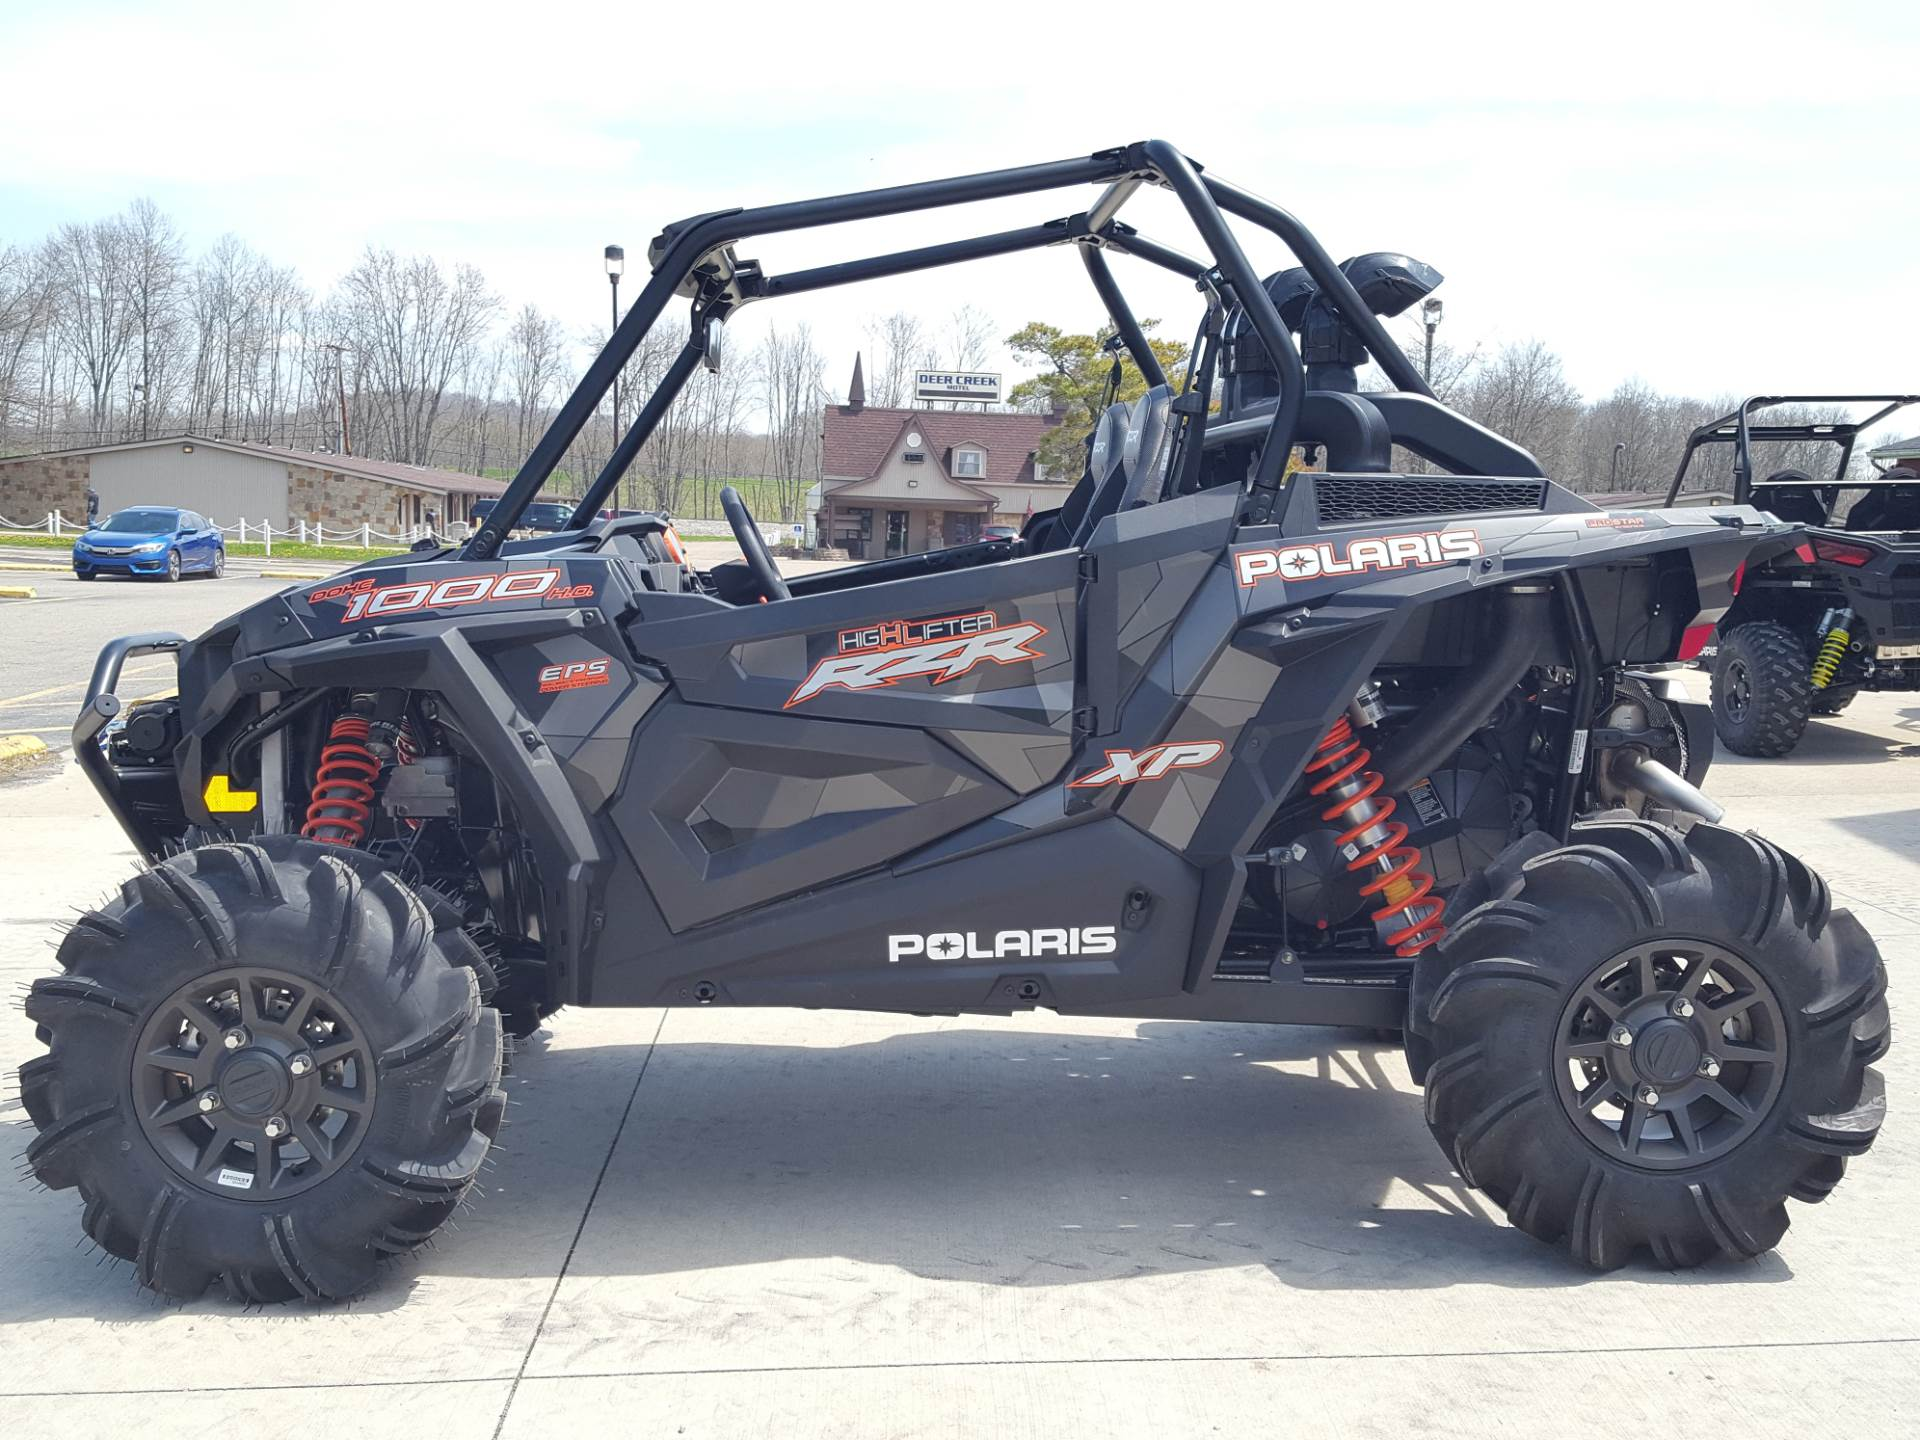 used 2018 polaris rzr xp 1000 eps high lifter edition utility vehicles in cambridge oh stock. Black Bedroom Furniture Sets. Home Design Ideas